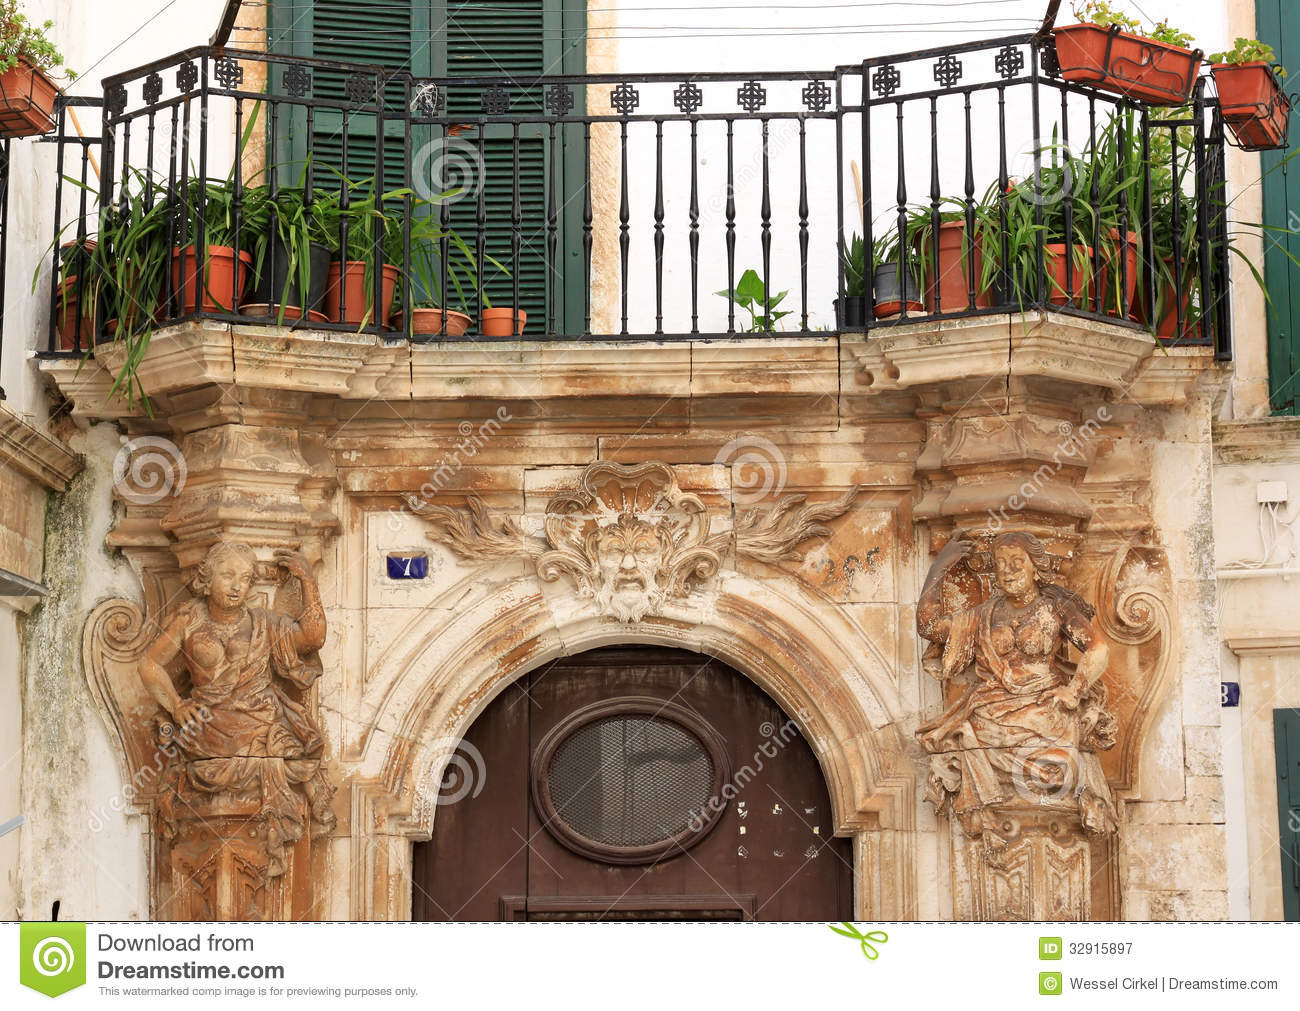 Sculptures and balcony in martina franca italy royalty for Balcony in italian